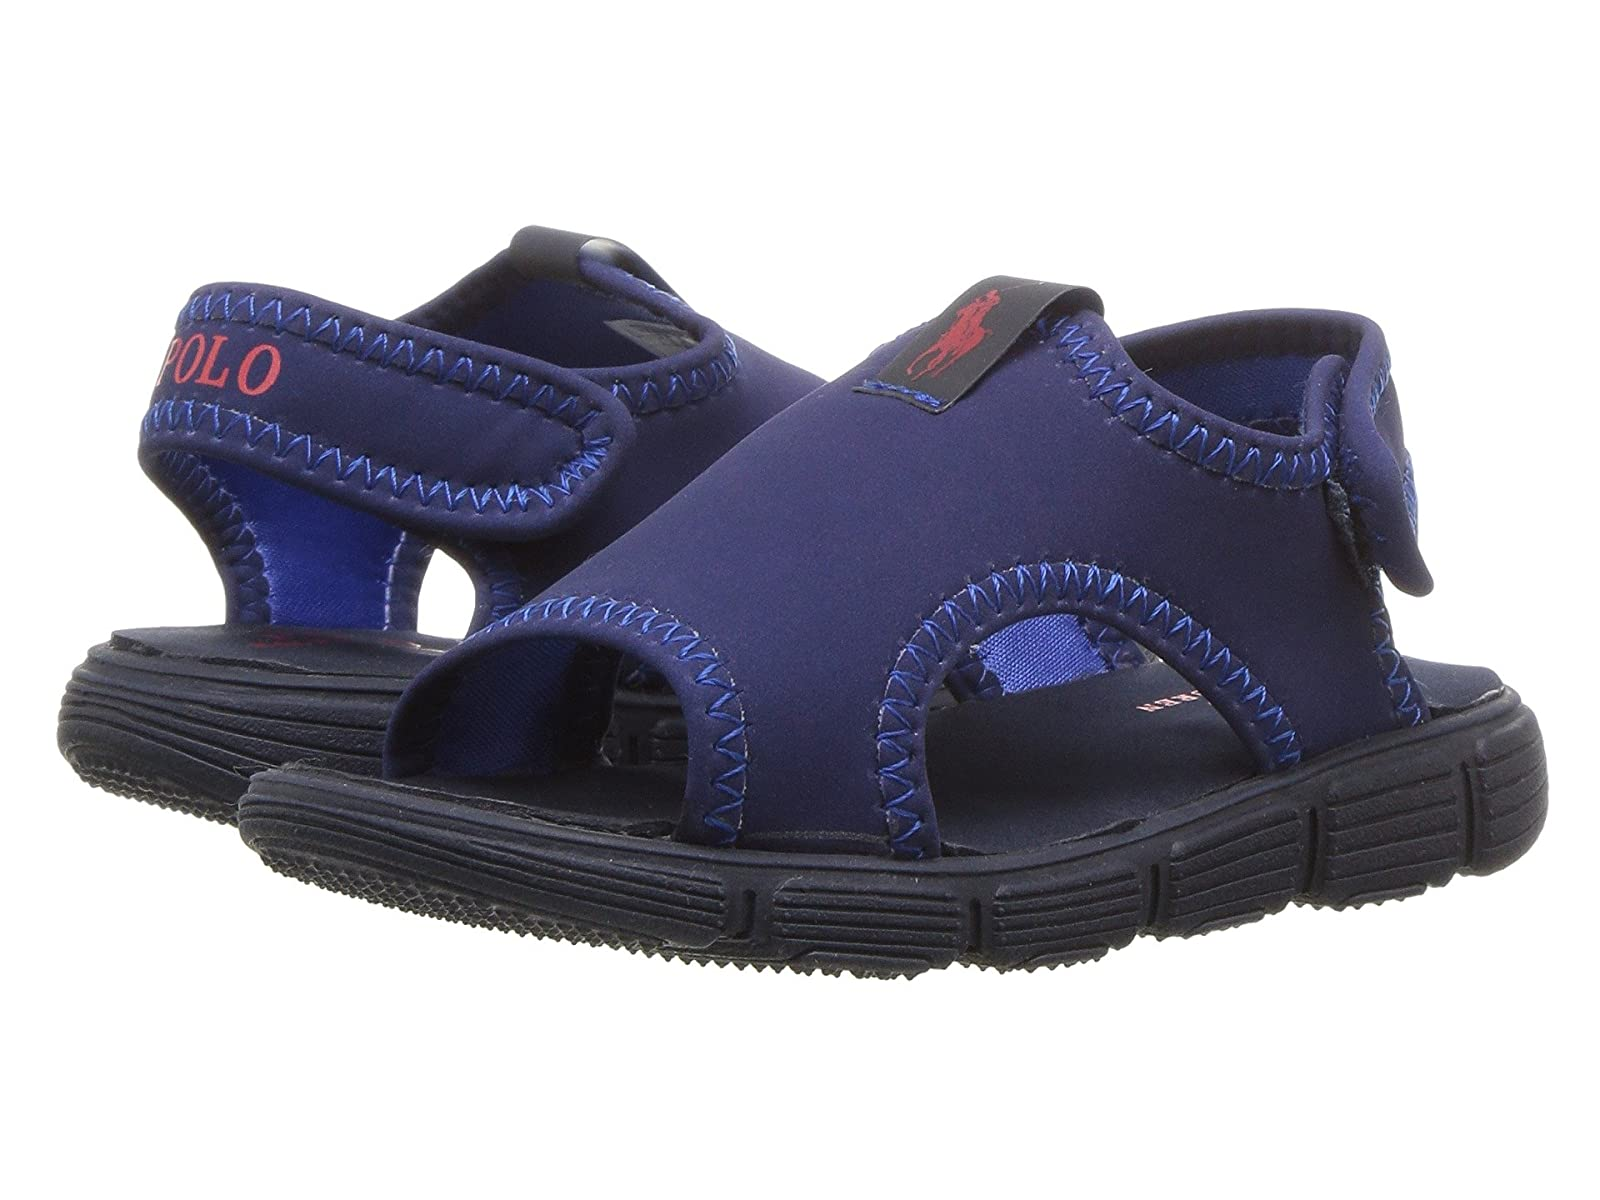 Polo Ralph Lauren Kids Kanyon (Toddler)Atmospheric grades have affordable shoes